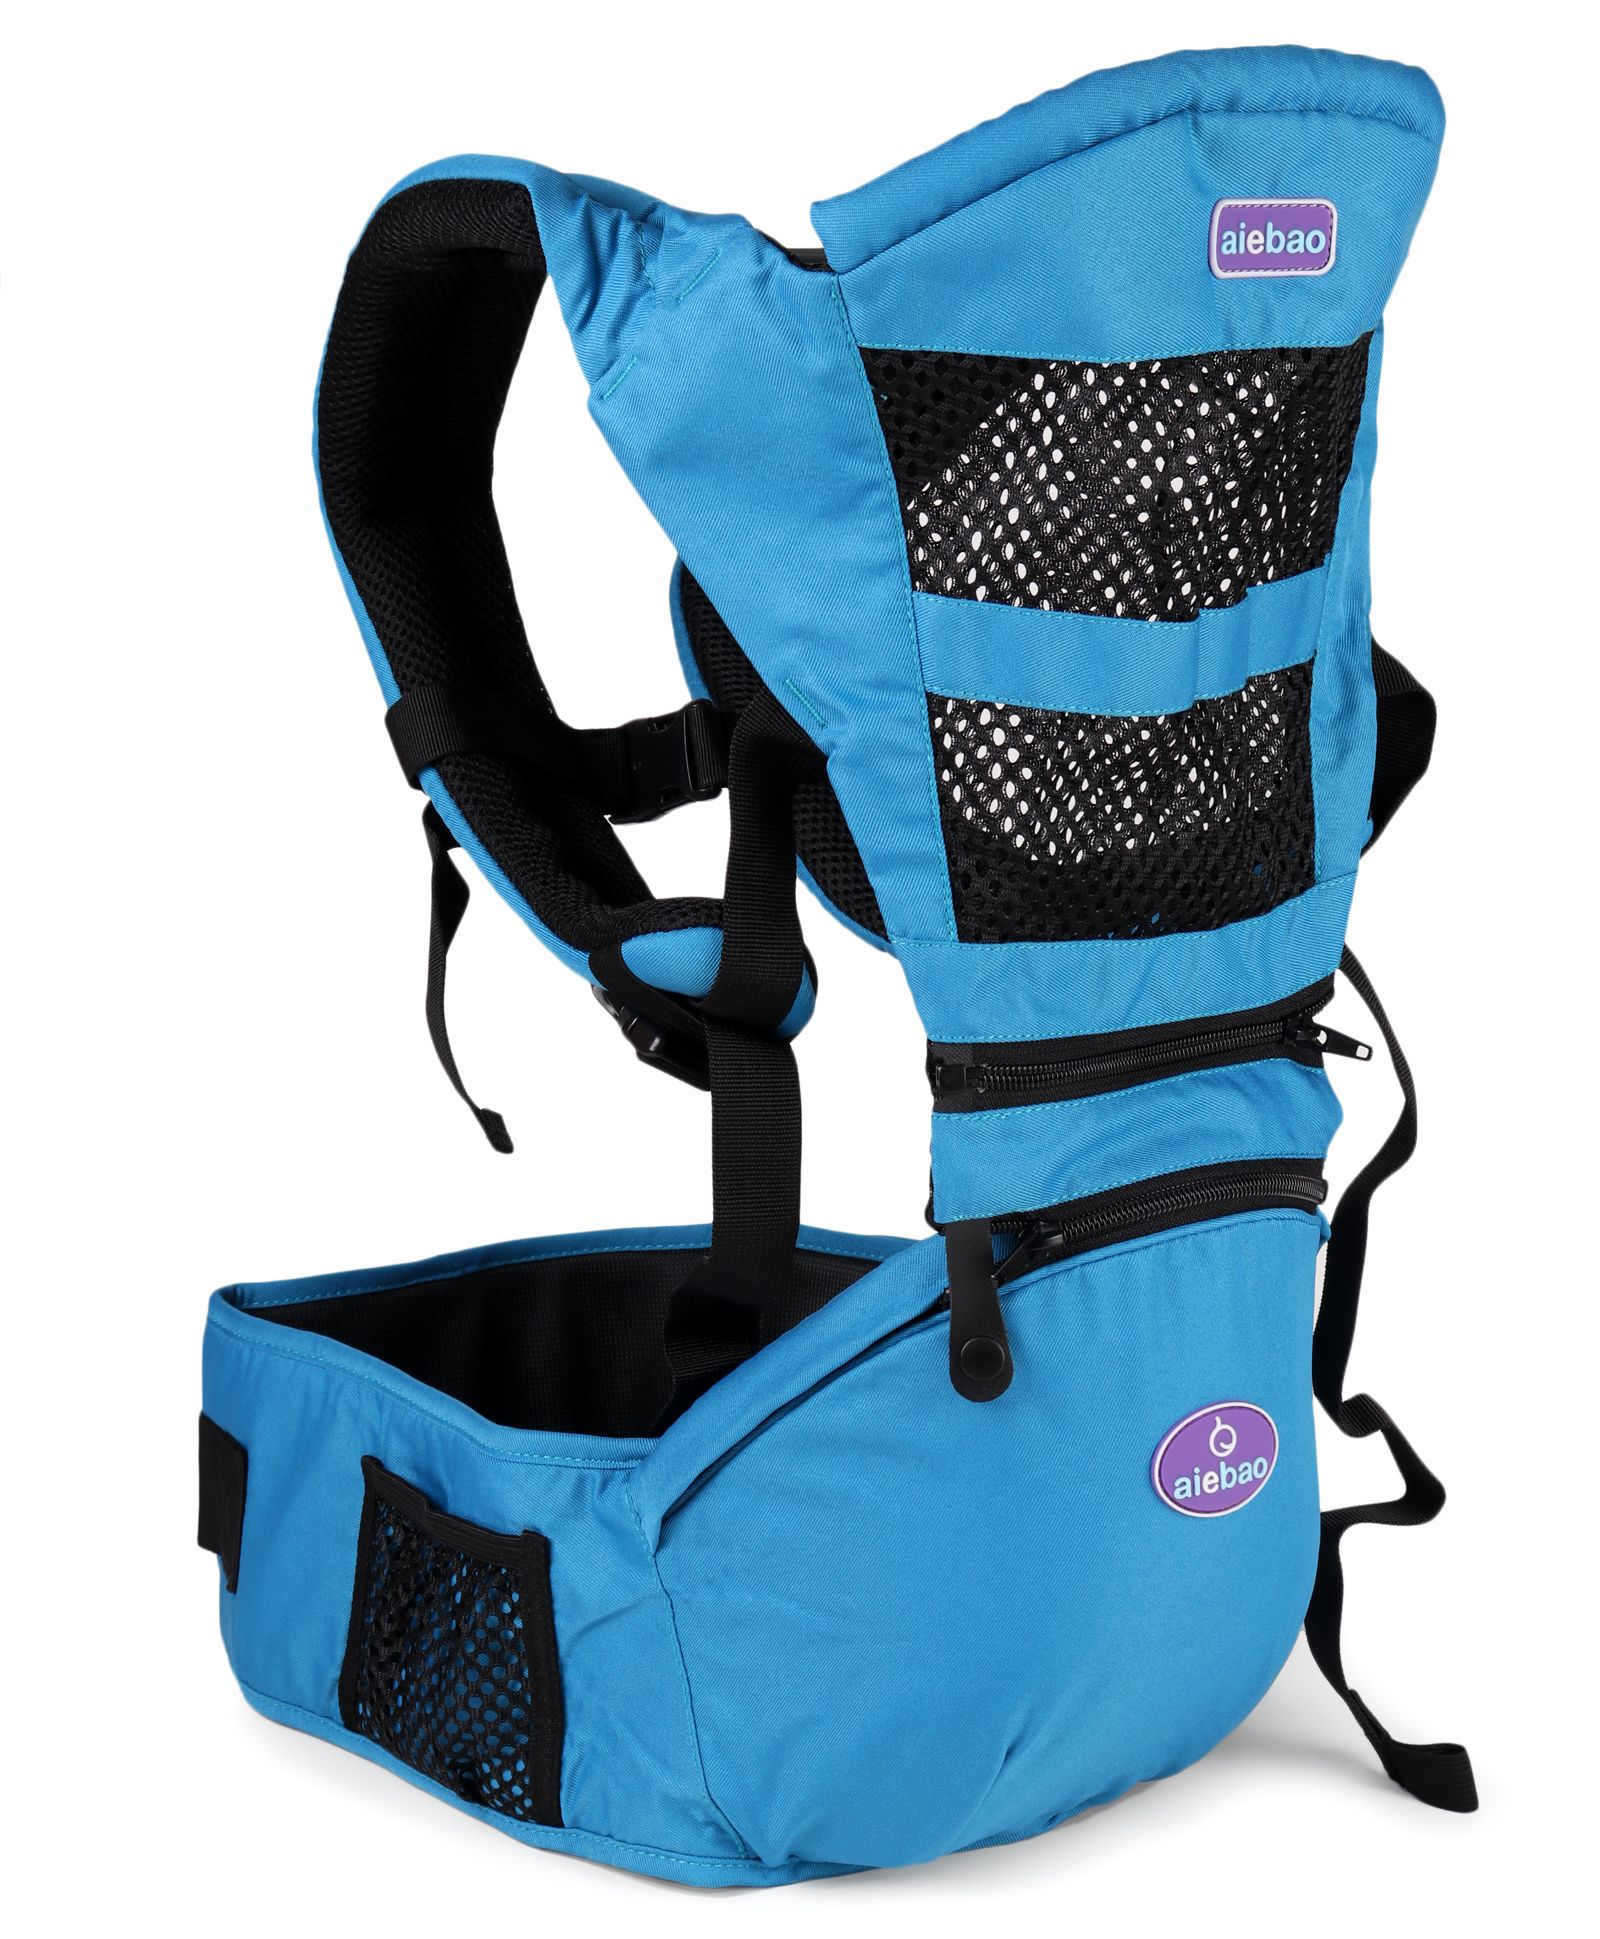 Aiebao Print Baby Carrier - Blue